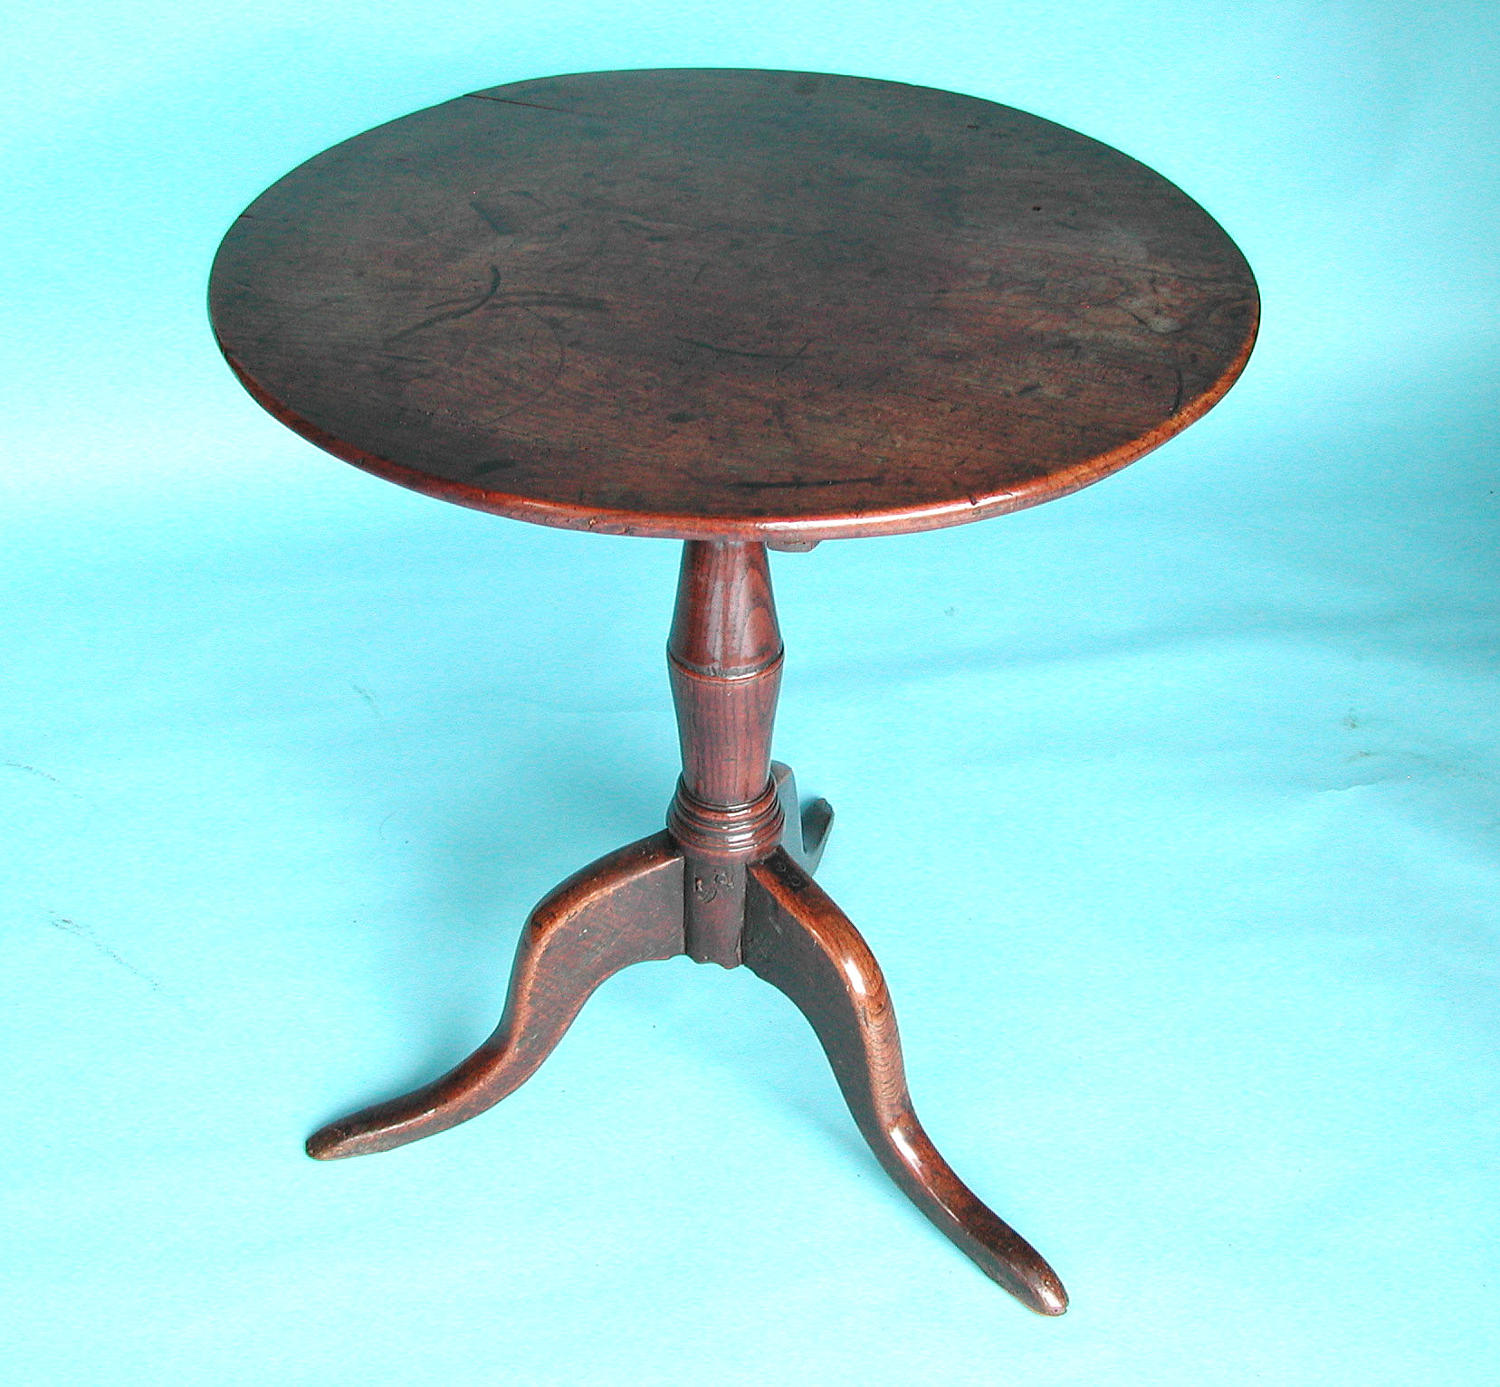 Antique Furniture 18thc Oak & Elm Tripod Table. English C1740 - C1760